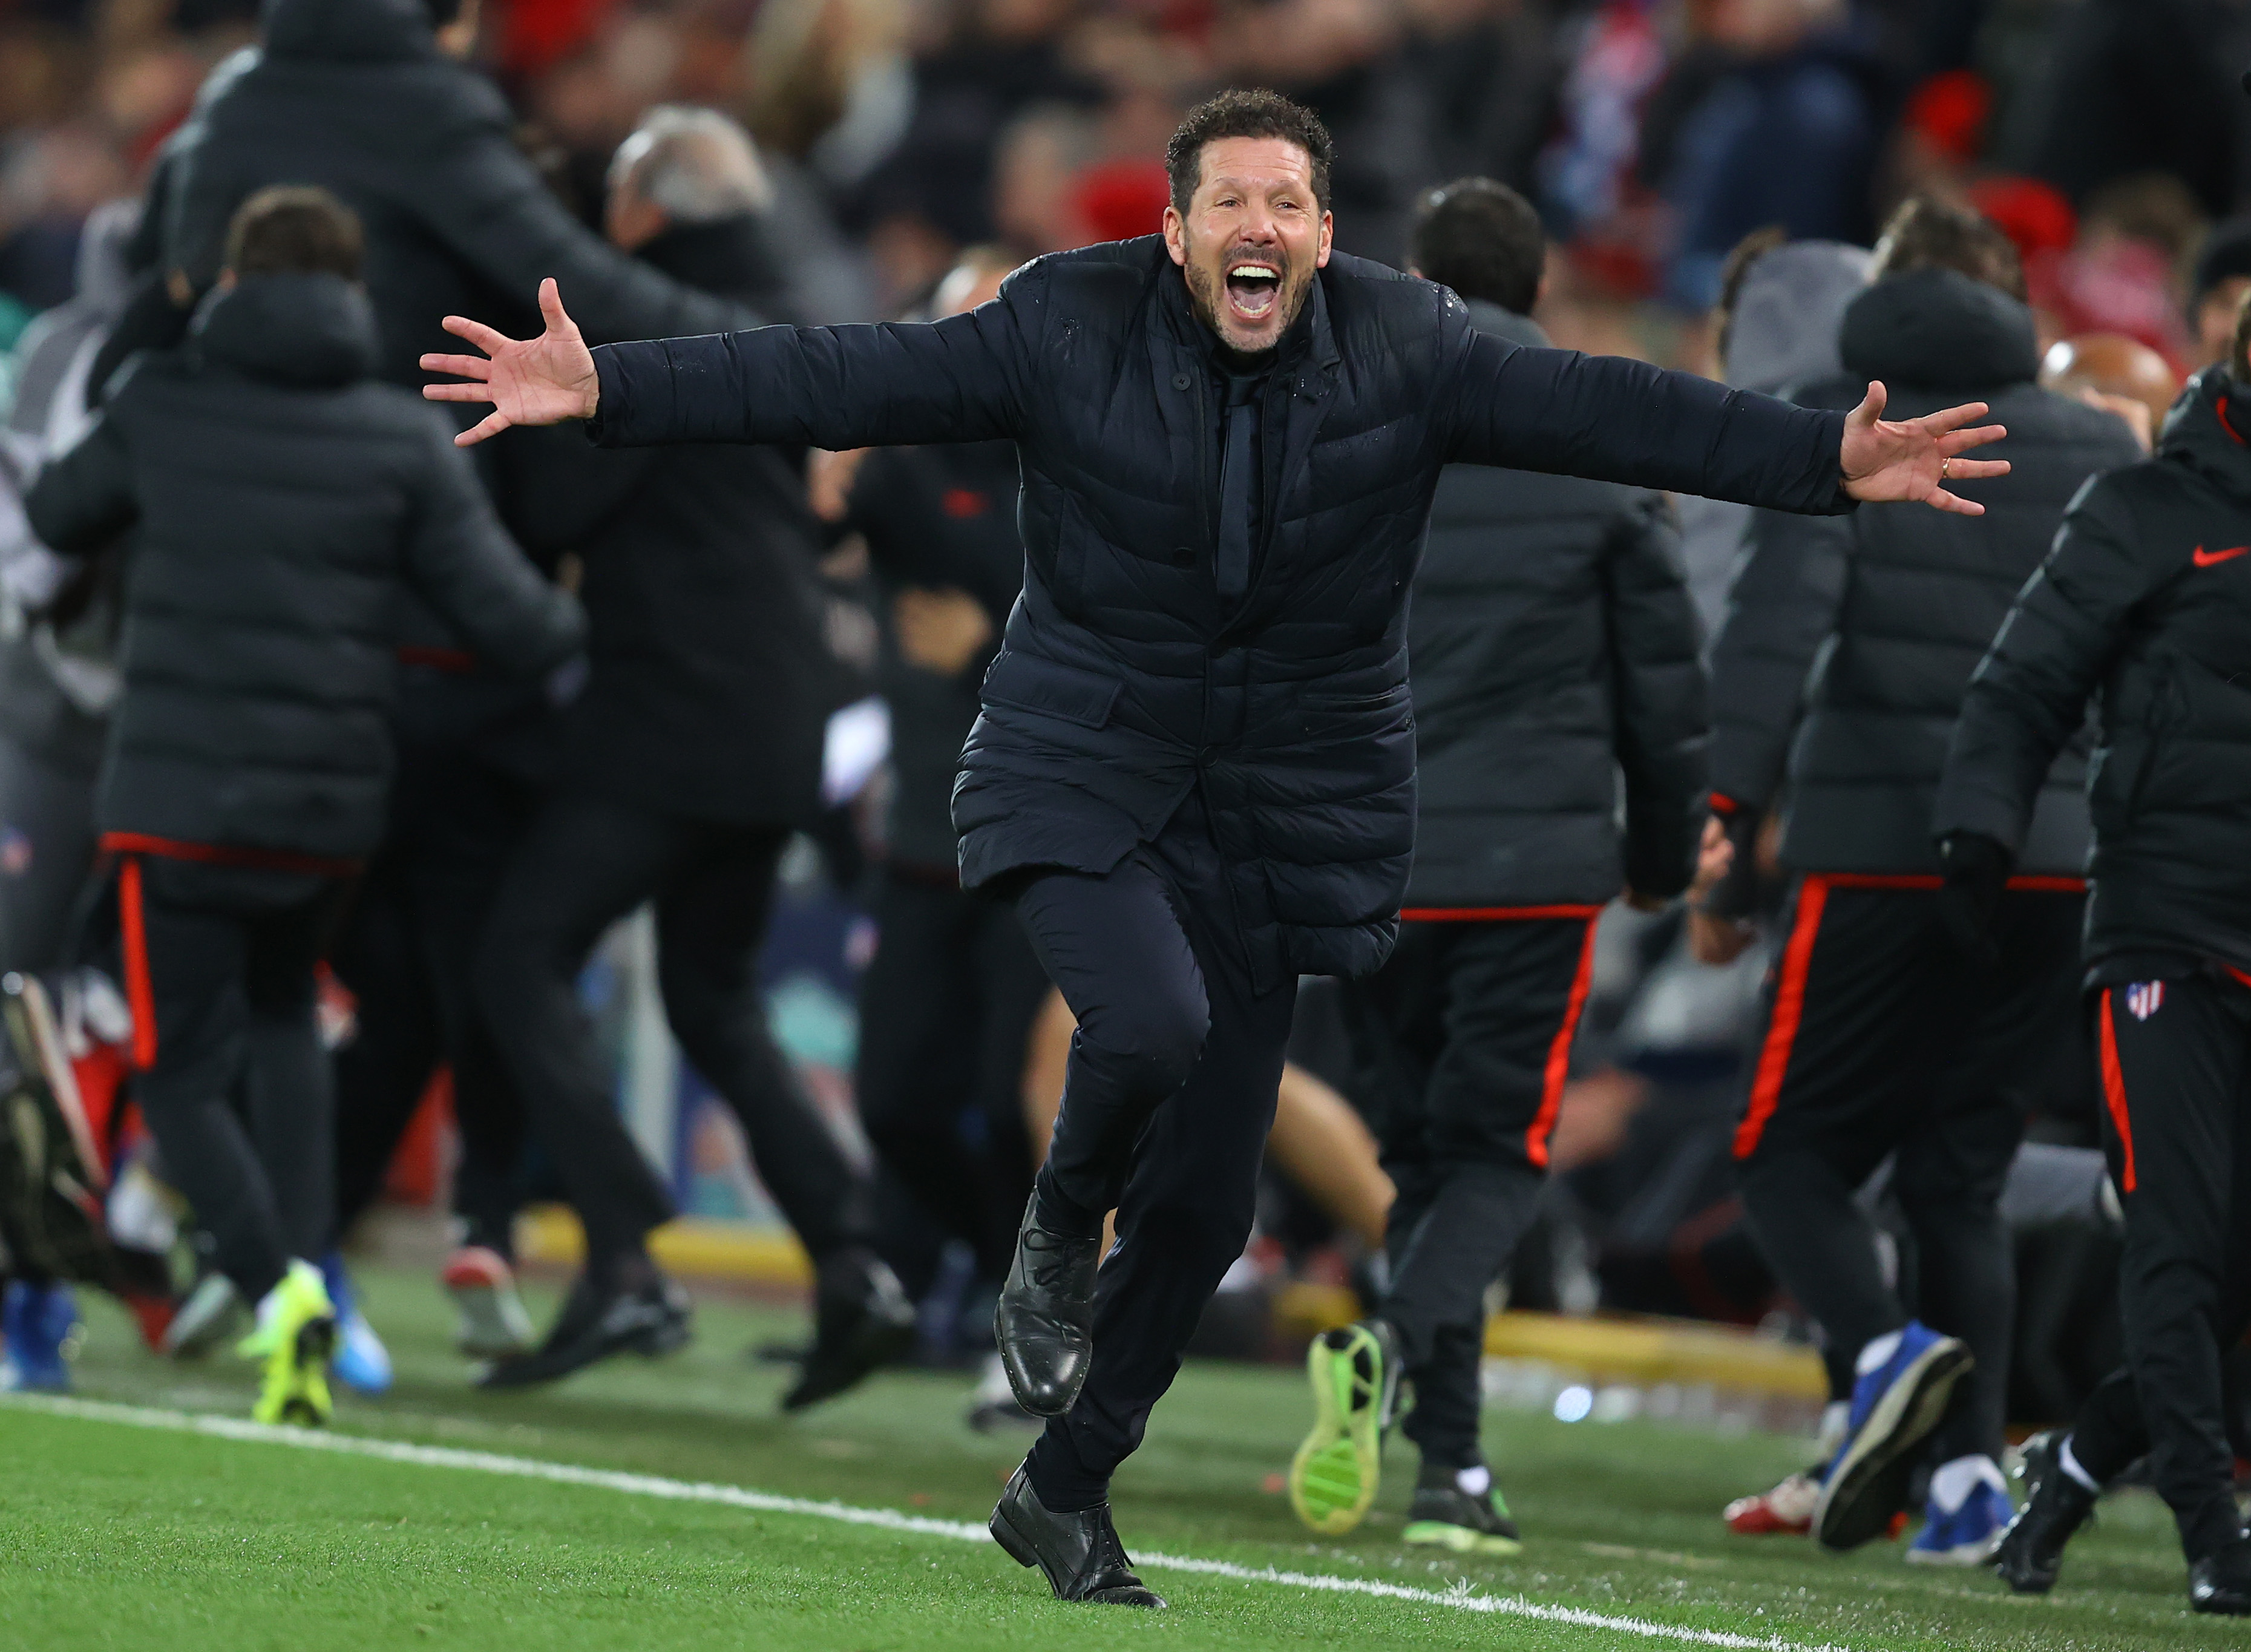 UEFA Champions League Simeone